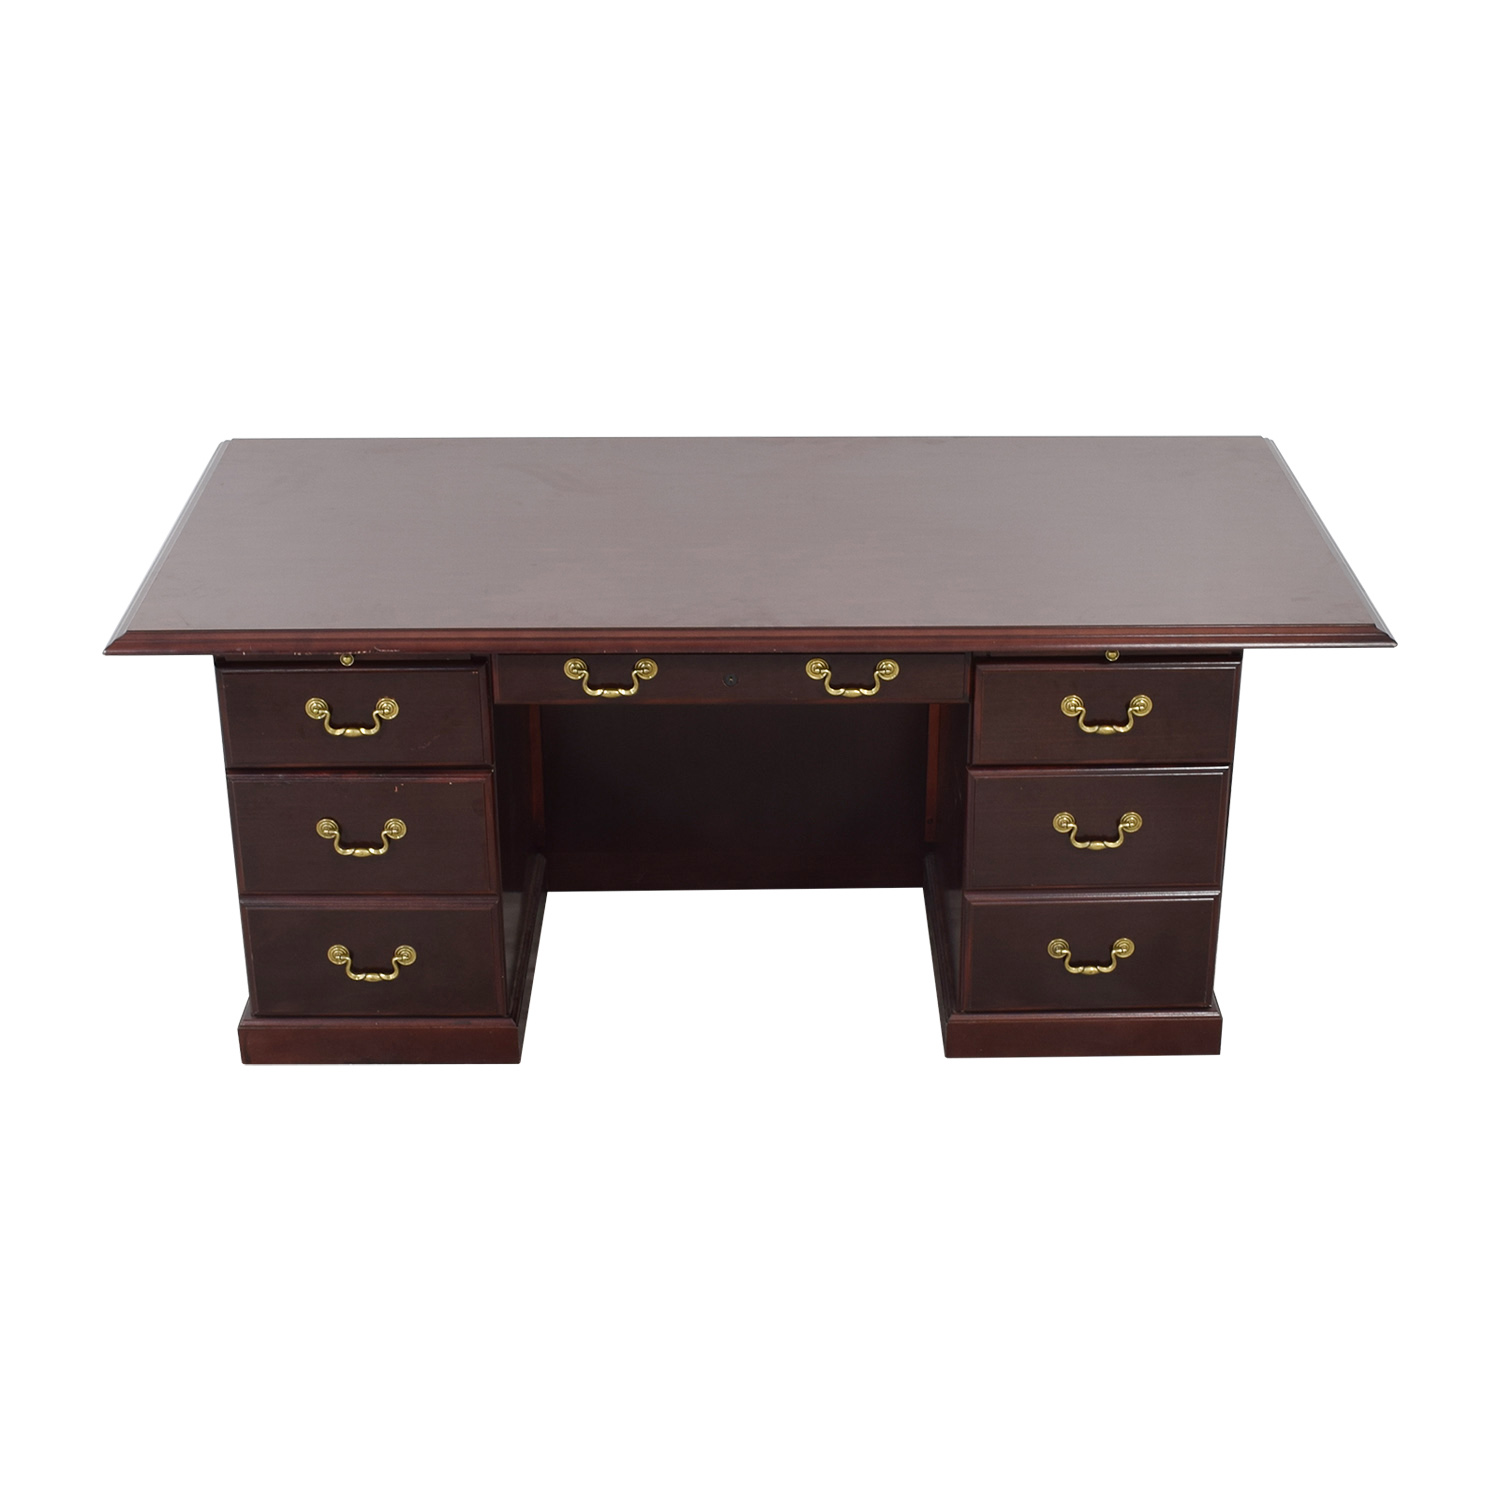 Mahogany Desk with Seven-Drawers for sale